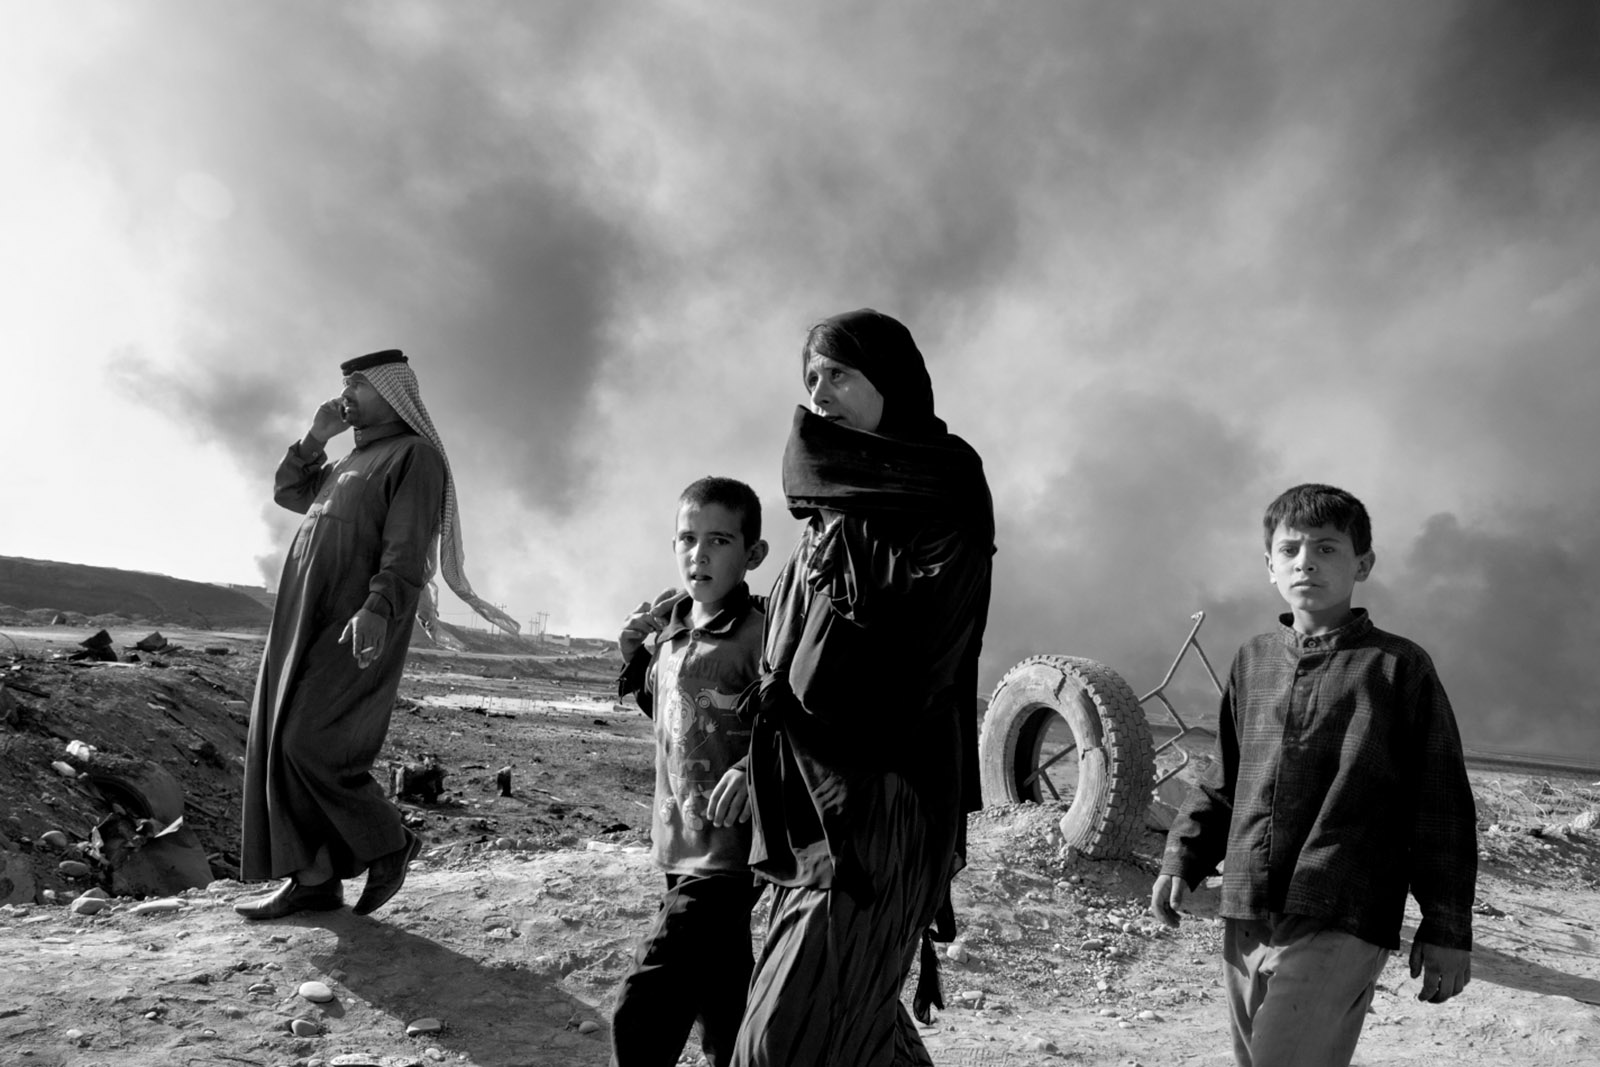 Iraqi civilians fleeing the town of Qayyara, about thirty-five miles south of Mosul, November 2016